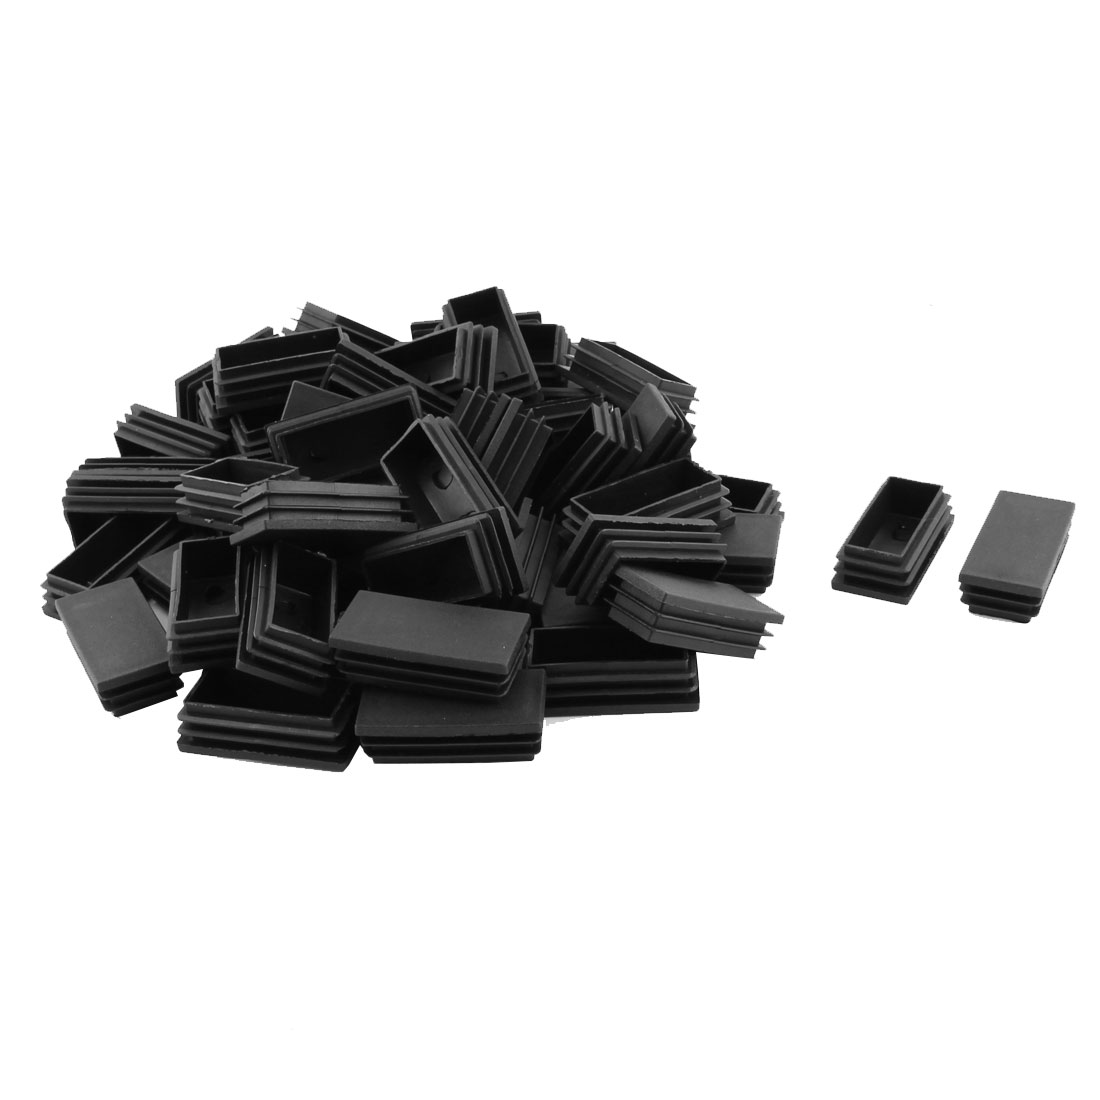 Home Office Plastic Rectangle Shaped Furniture Chair Legs Tube Insert Black 60 Pcs